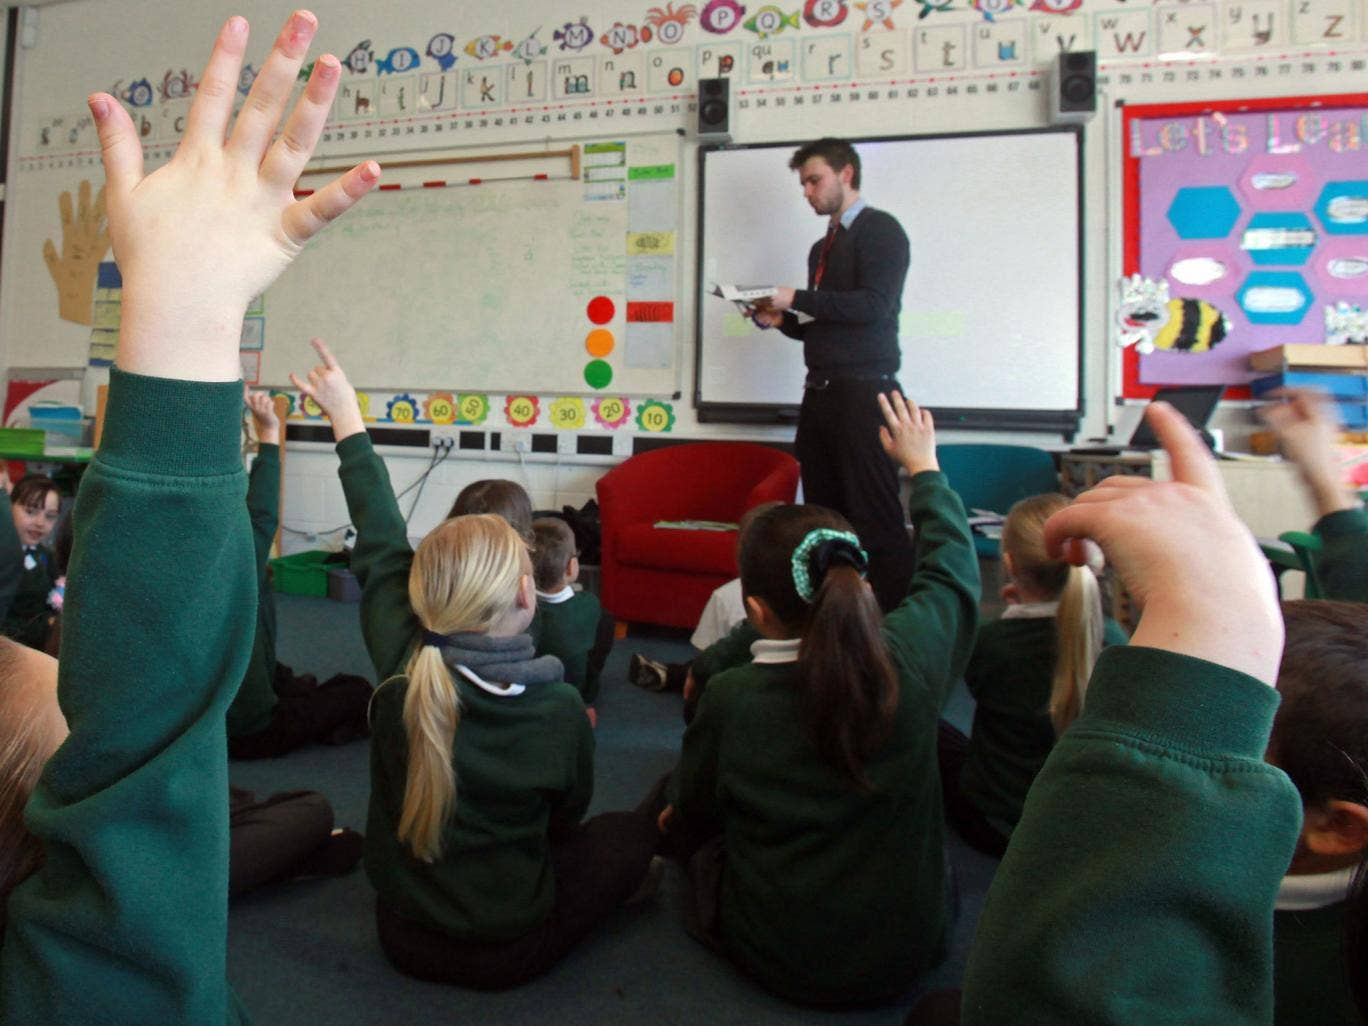 A recruitment crisis has left thousands of schools unable to fill vacancies on their governing bodies, as potential candidates are intimidated by their responsibilities